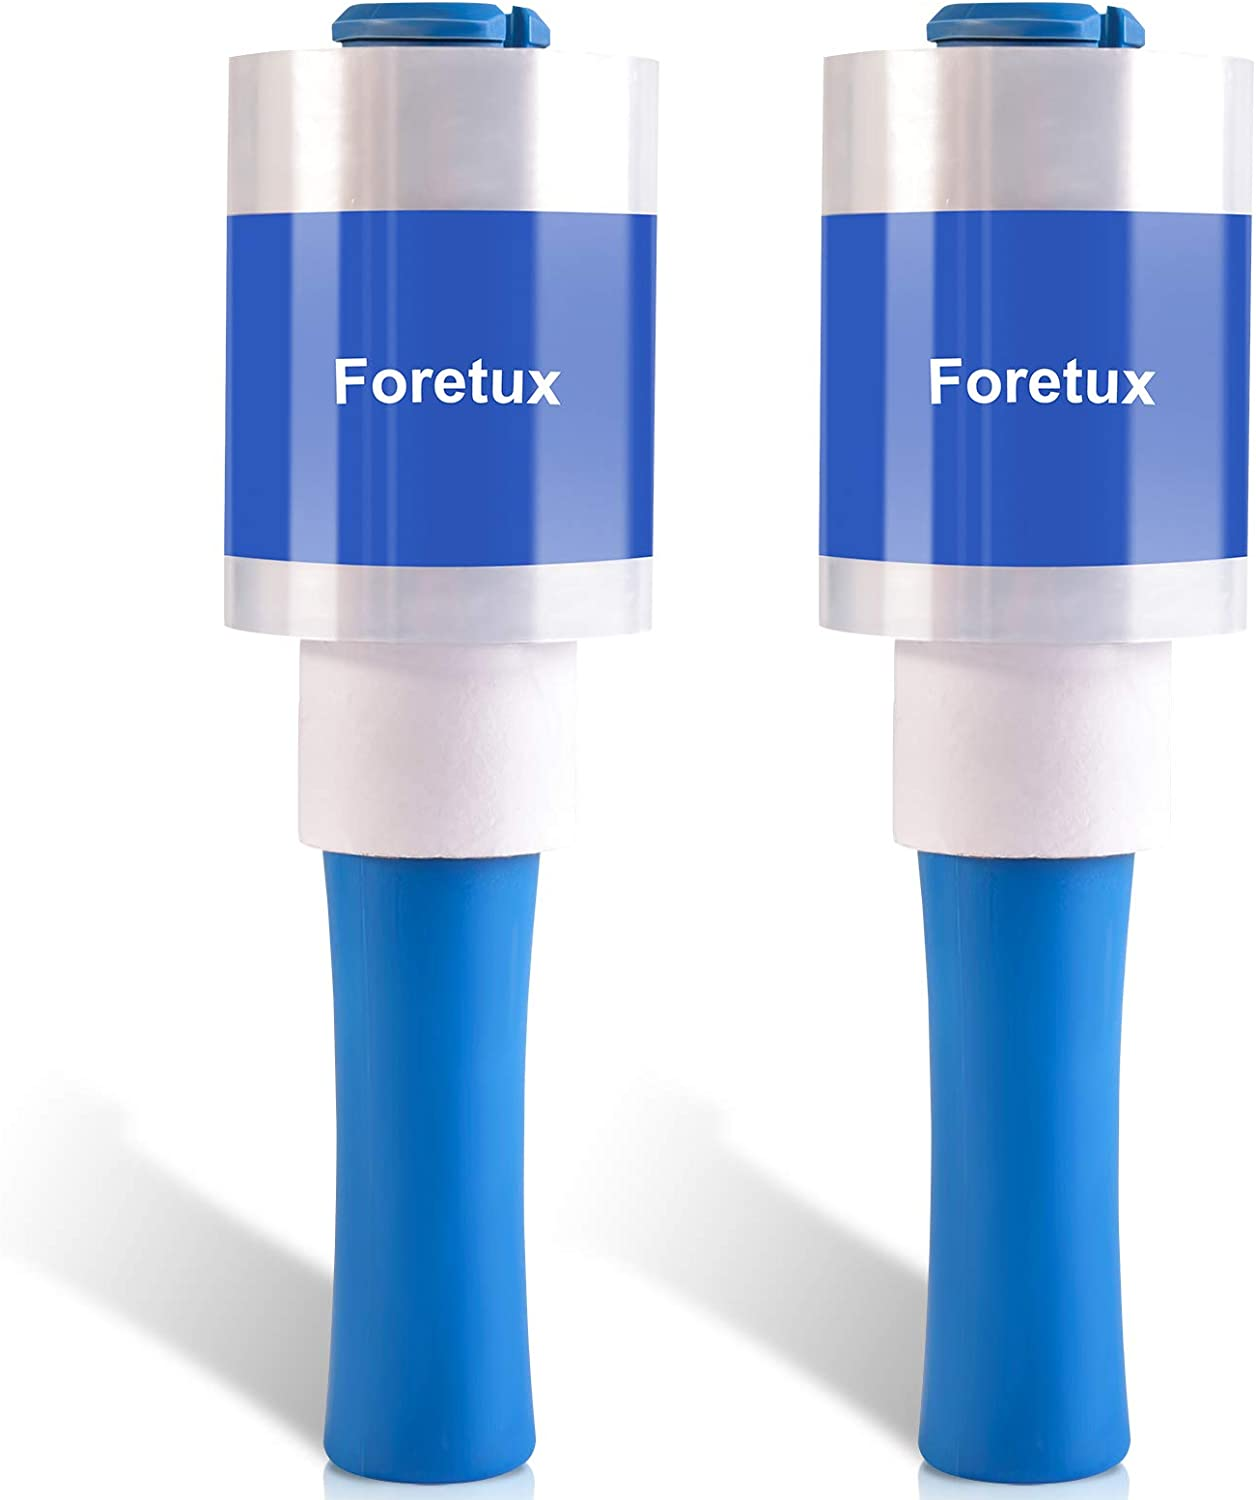 Foretux Mini 2 Pack Stretch Wrap Film with Handle | (3.94